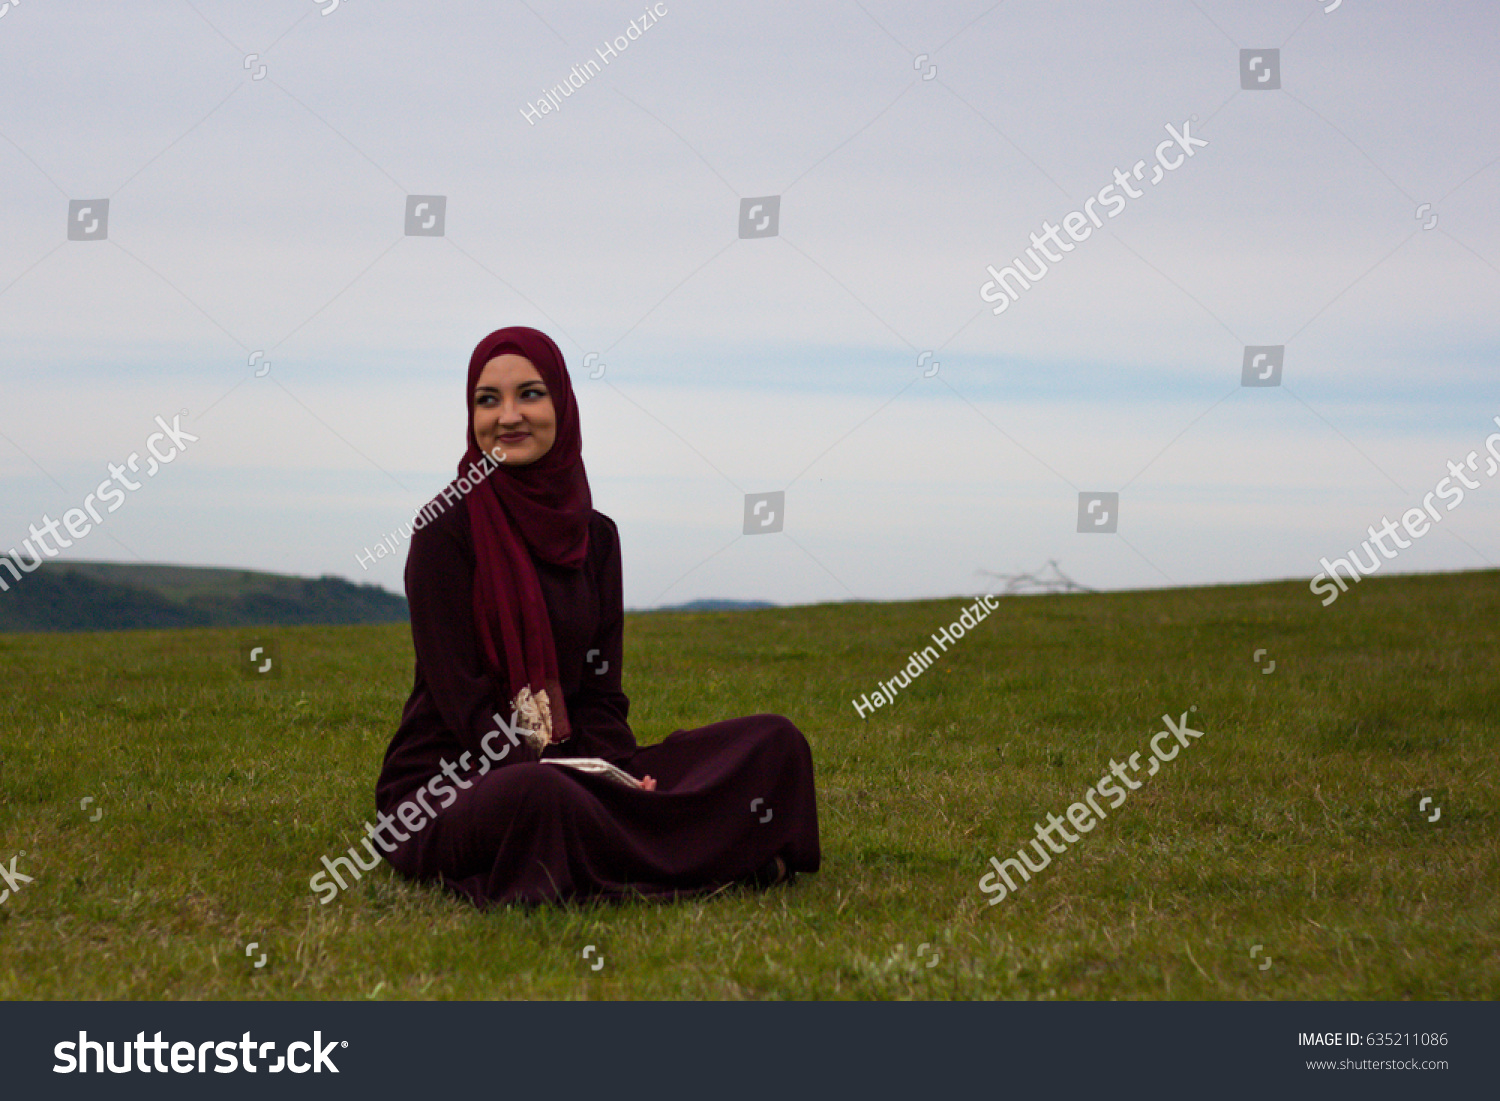 meadow muslim girl personals Meet thousands of pakistani, bengali, arab, indian, sunni, or shia singles in a safe and secure environment free sign up and get connecting with muslim dating.